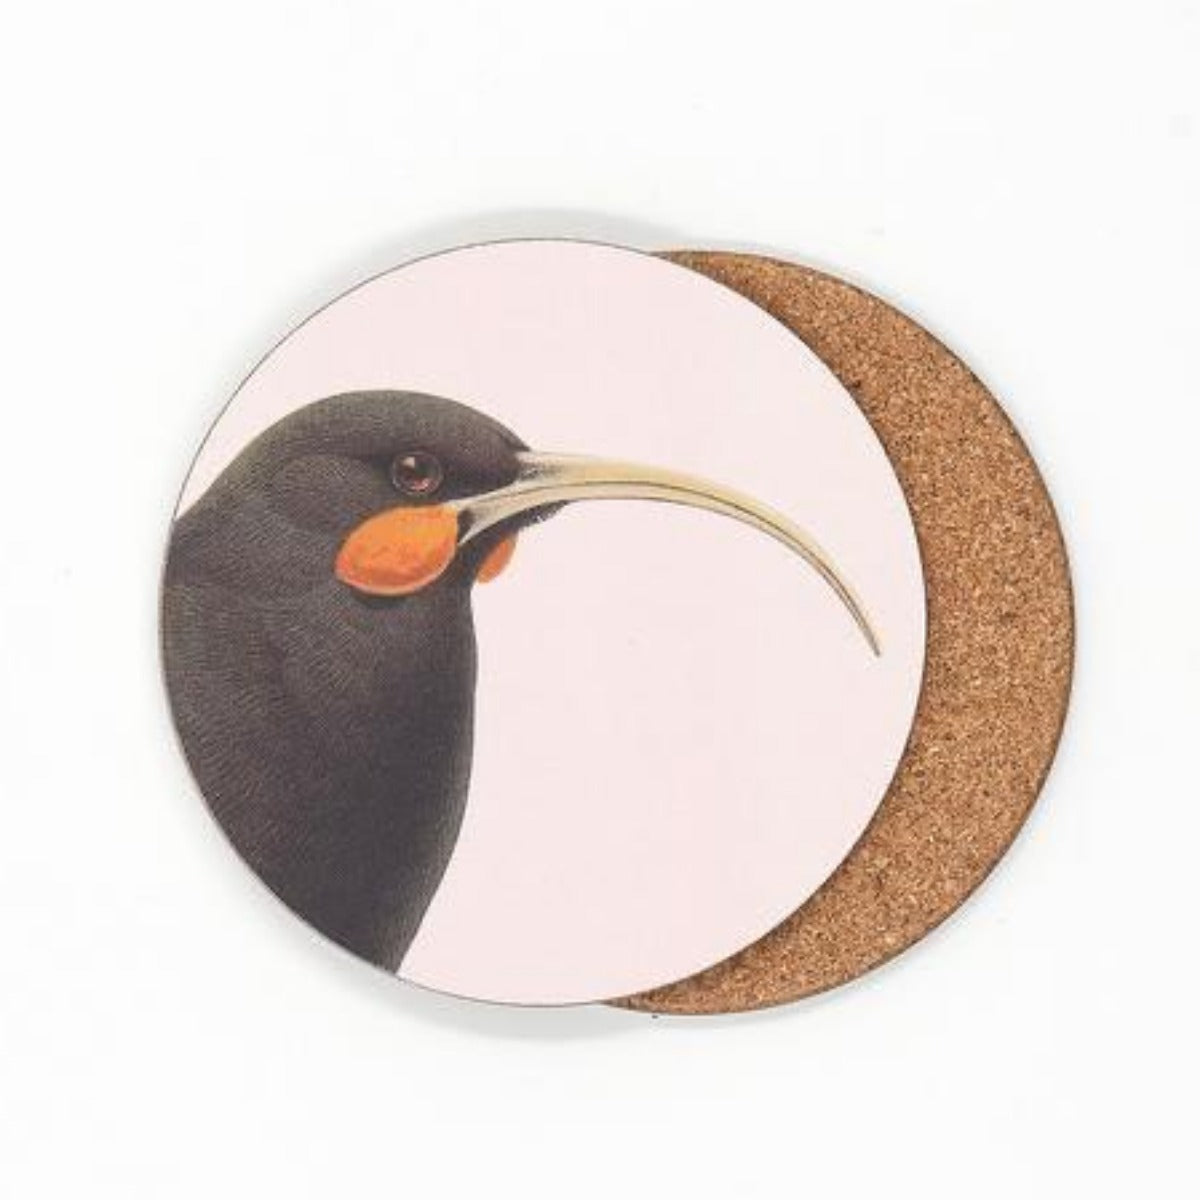 jade kiwi kaikoura gifts native bird coasters huia